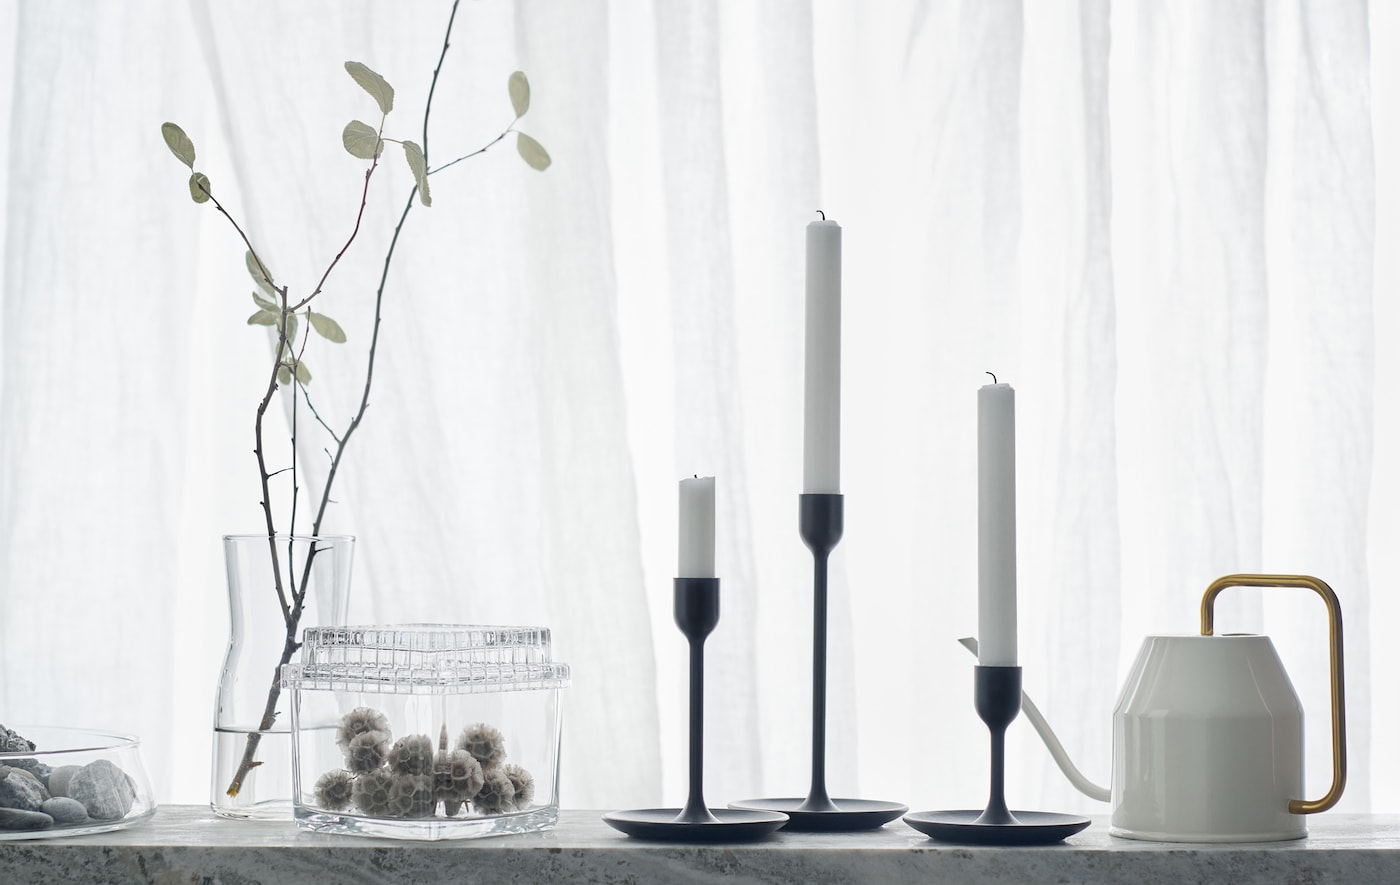 Three black candlesticks of different heights on a white backdrop with watering can and glass jars.